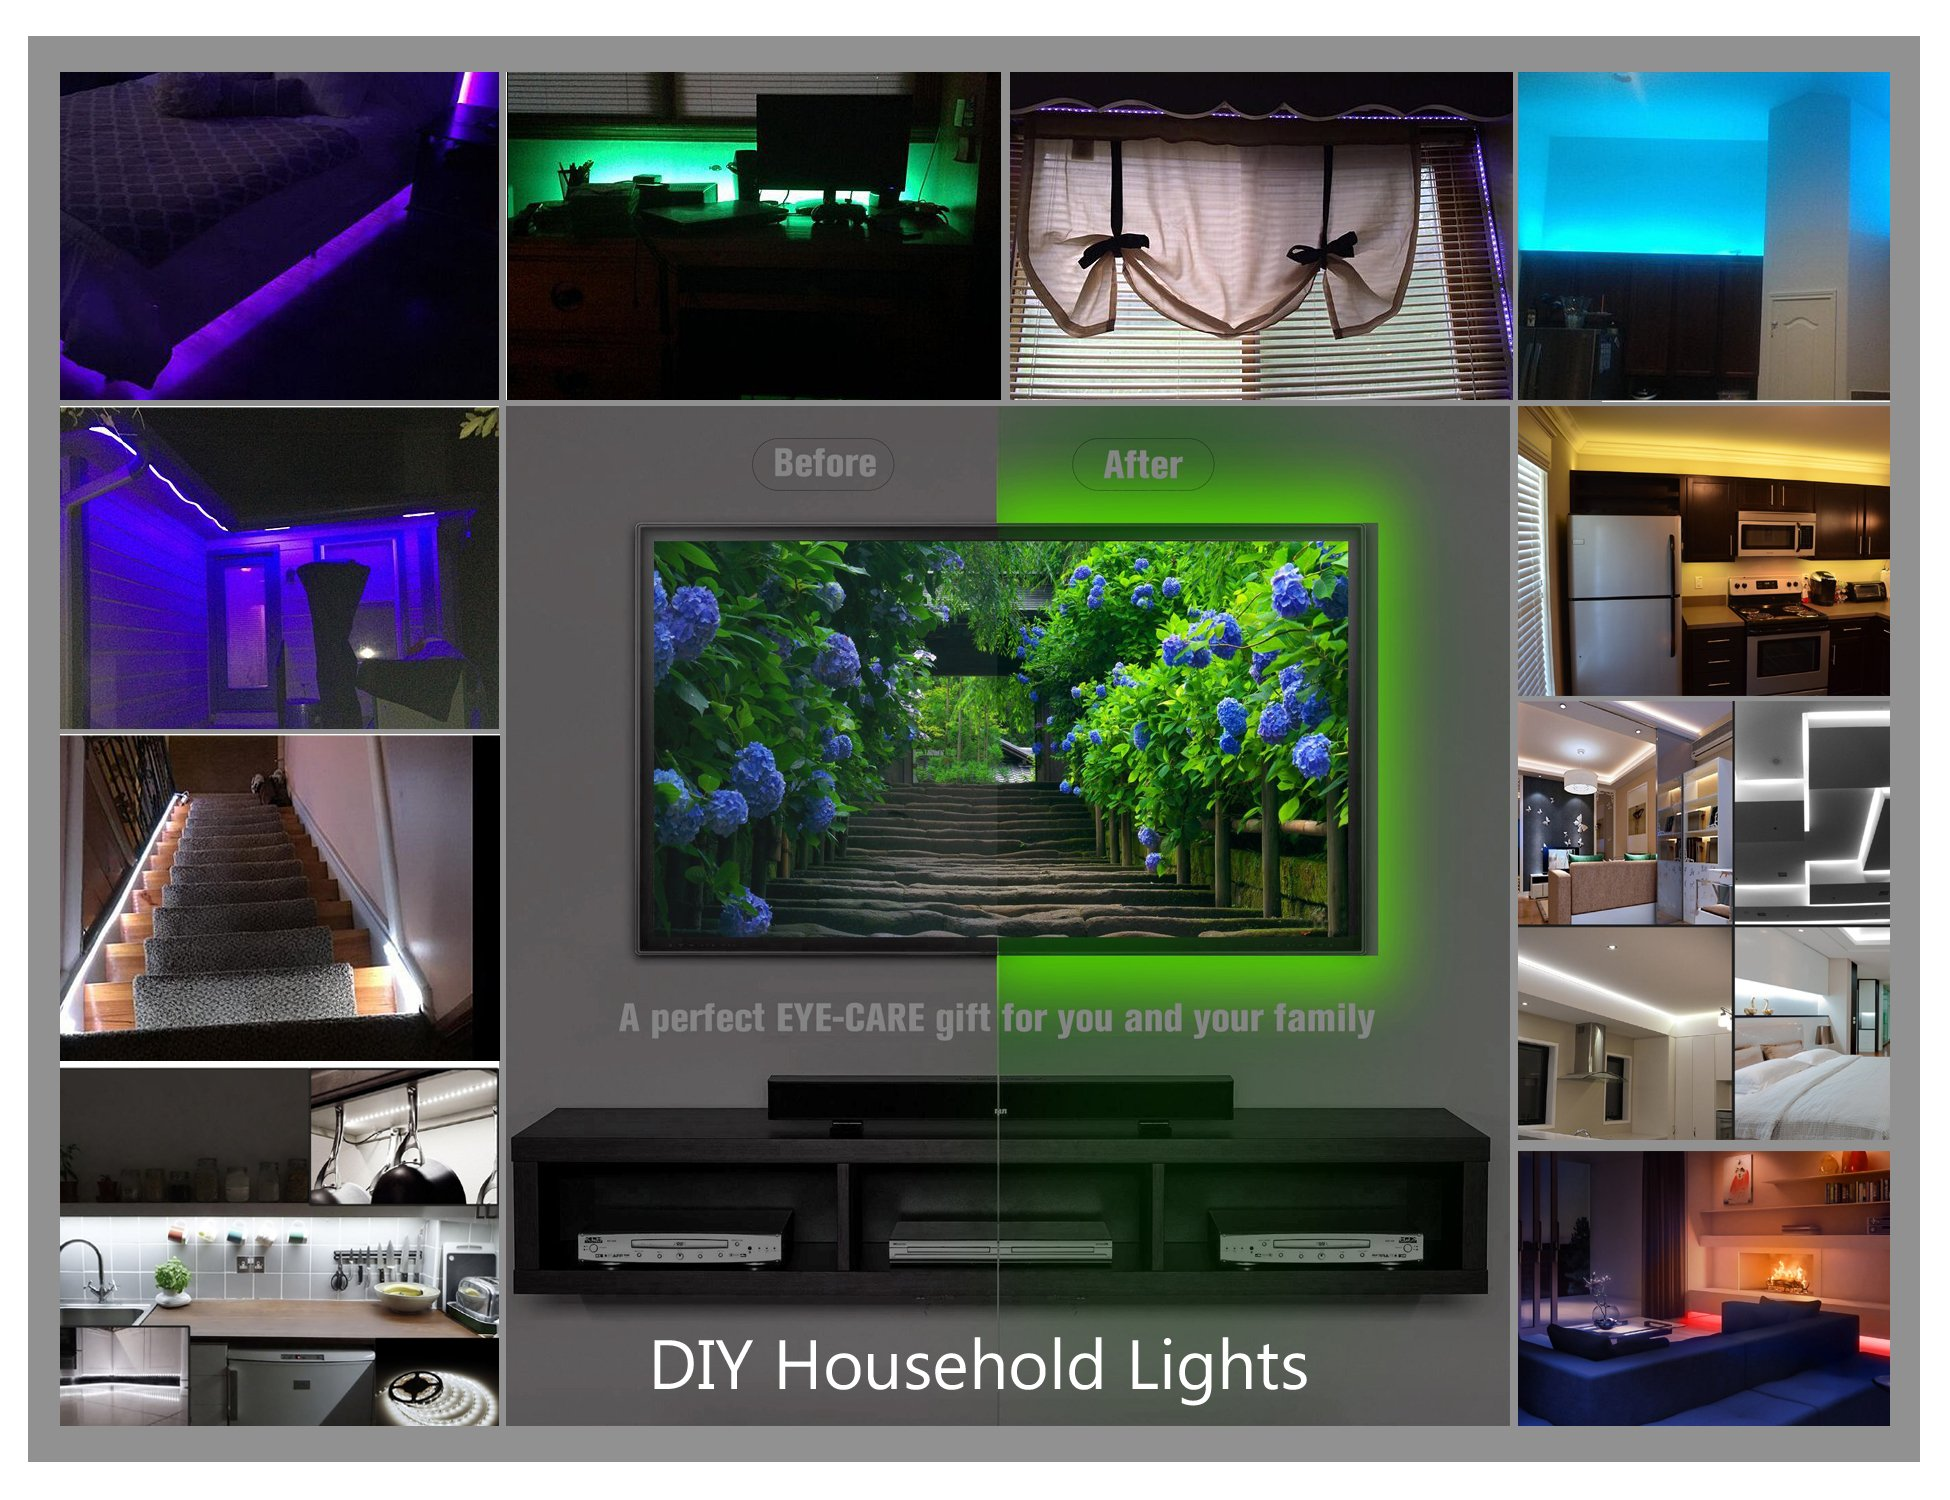 WYNK LED Strip Lights with Remote USB Back Light Fixture DIY 5050RGB Flexible 3.4M 104LED Color Changing Full Kit + 4 Connector + Remote Controller for Computer/TV/Home/Kitchen/Christmas Decorative by WYNK (Image #4)